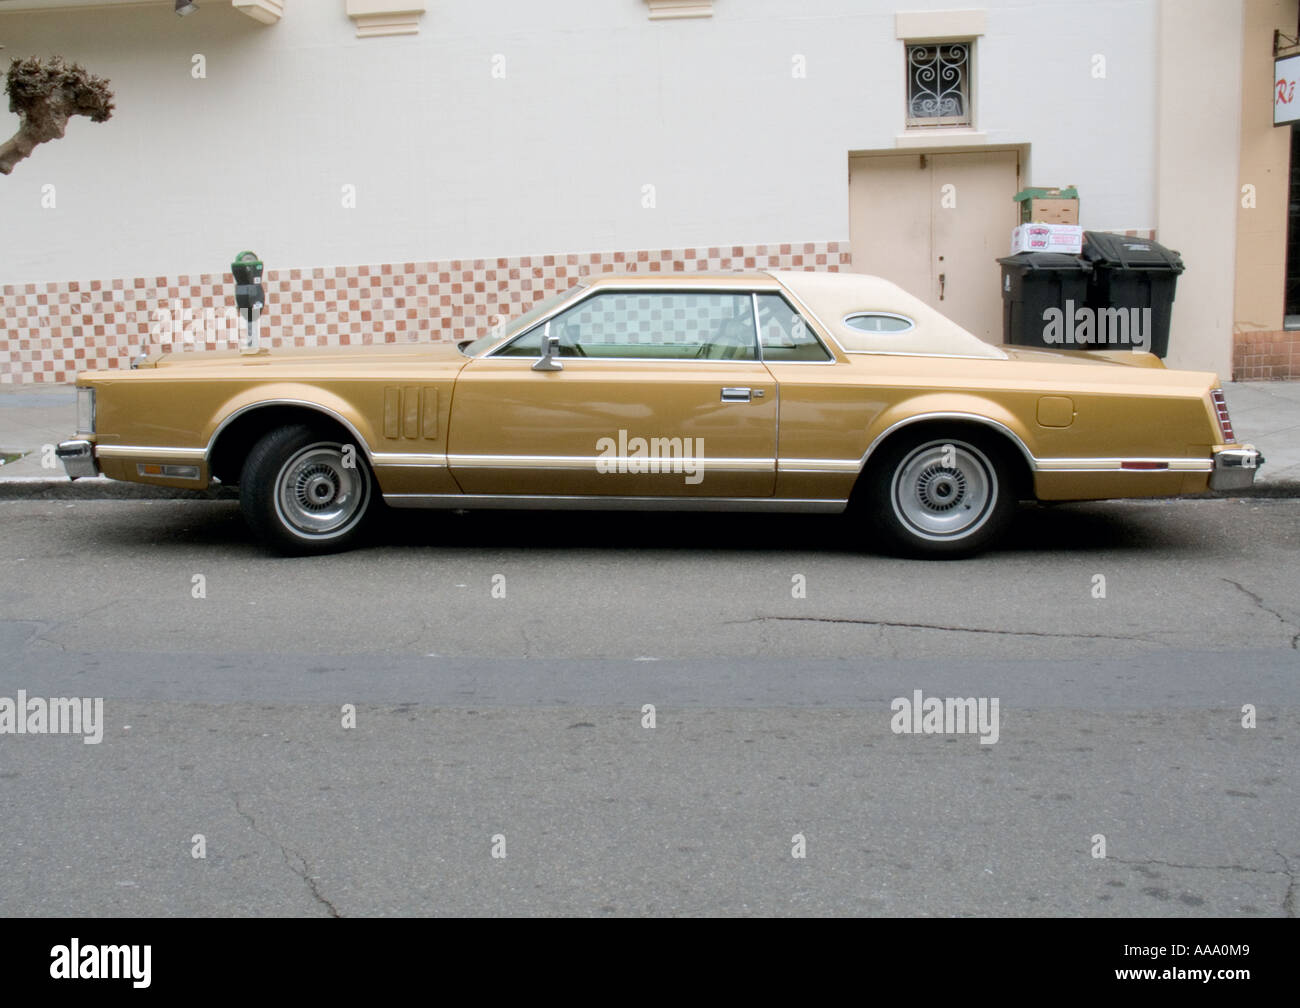 Chrysler imperial automobile from the 70 s era